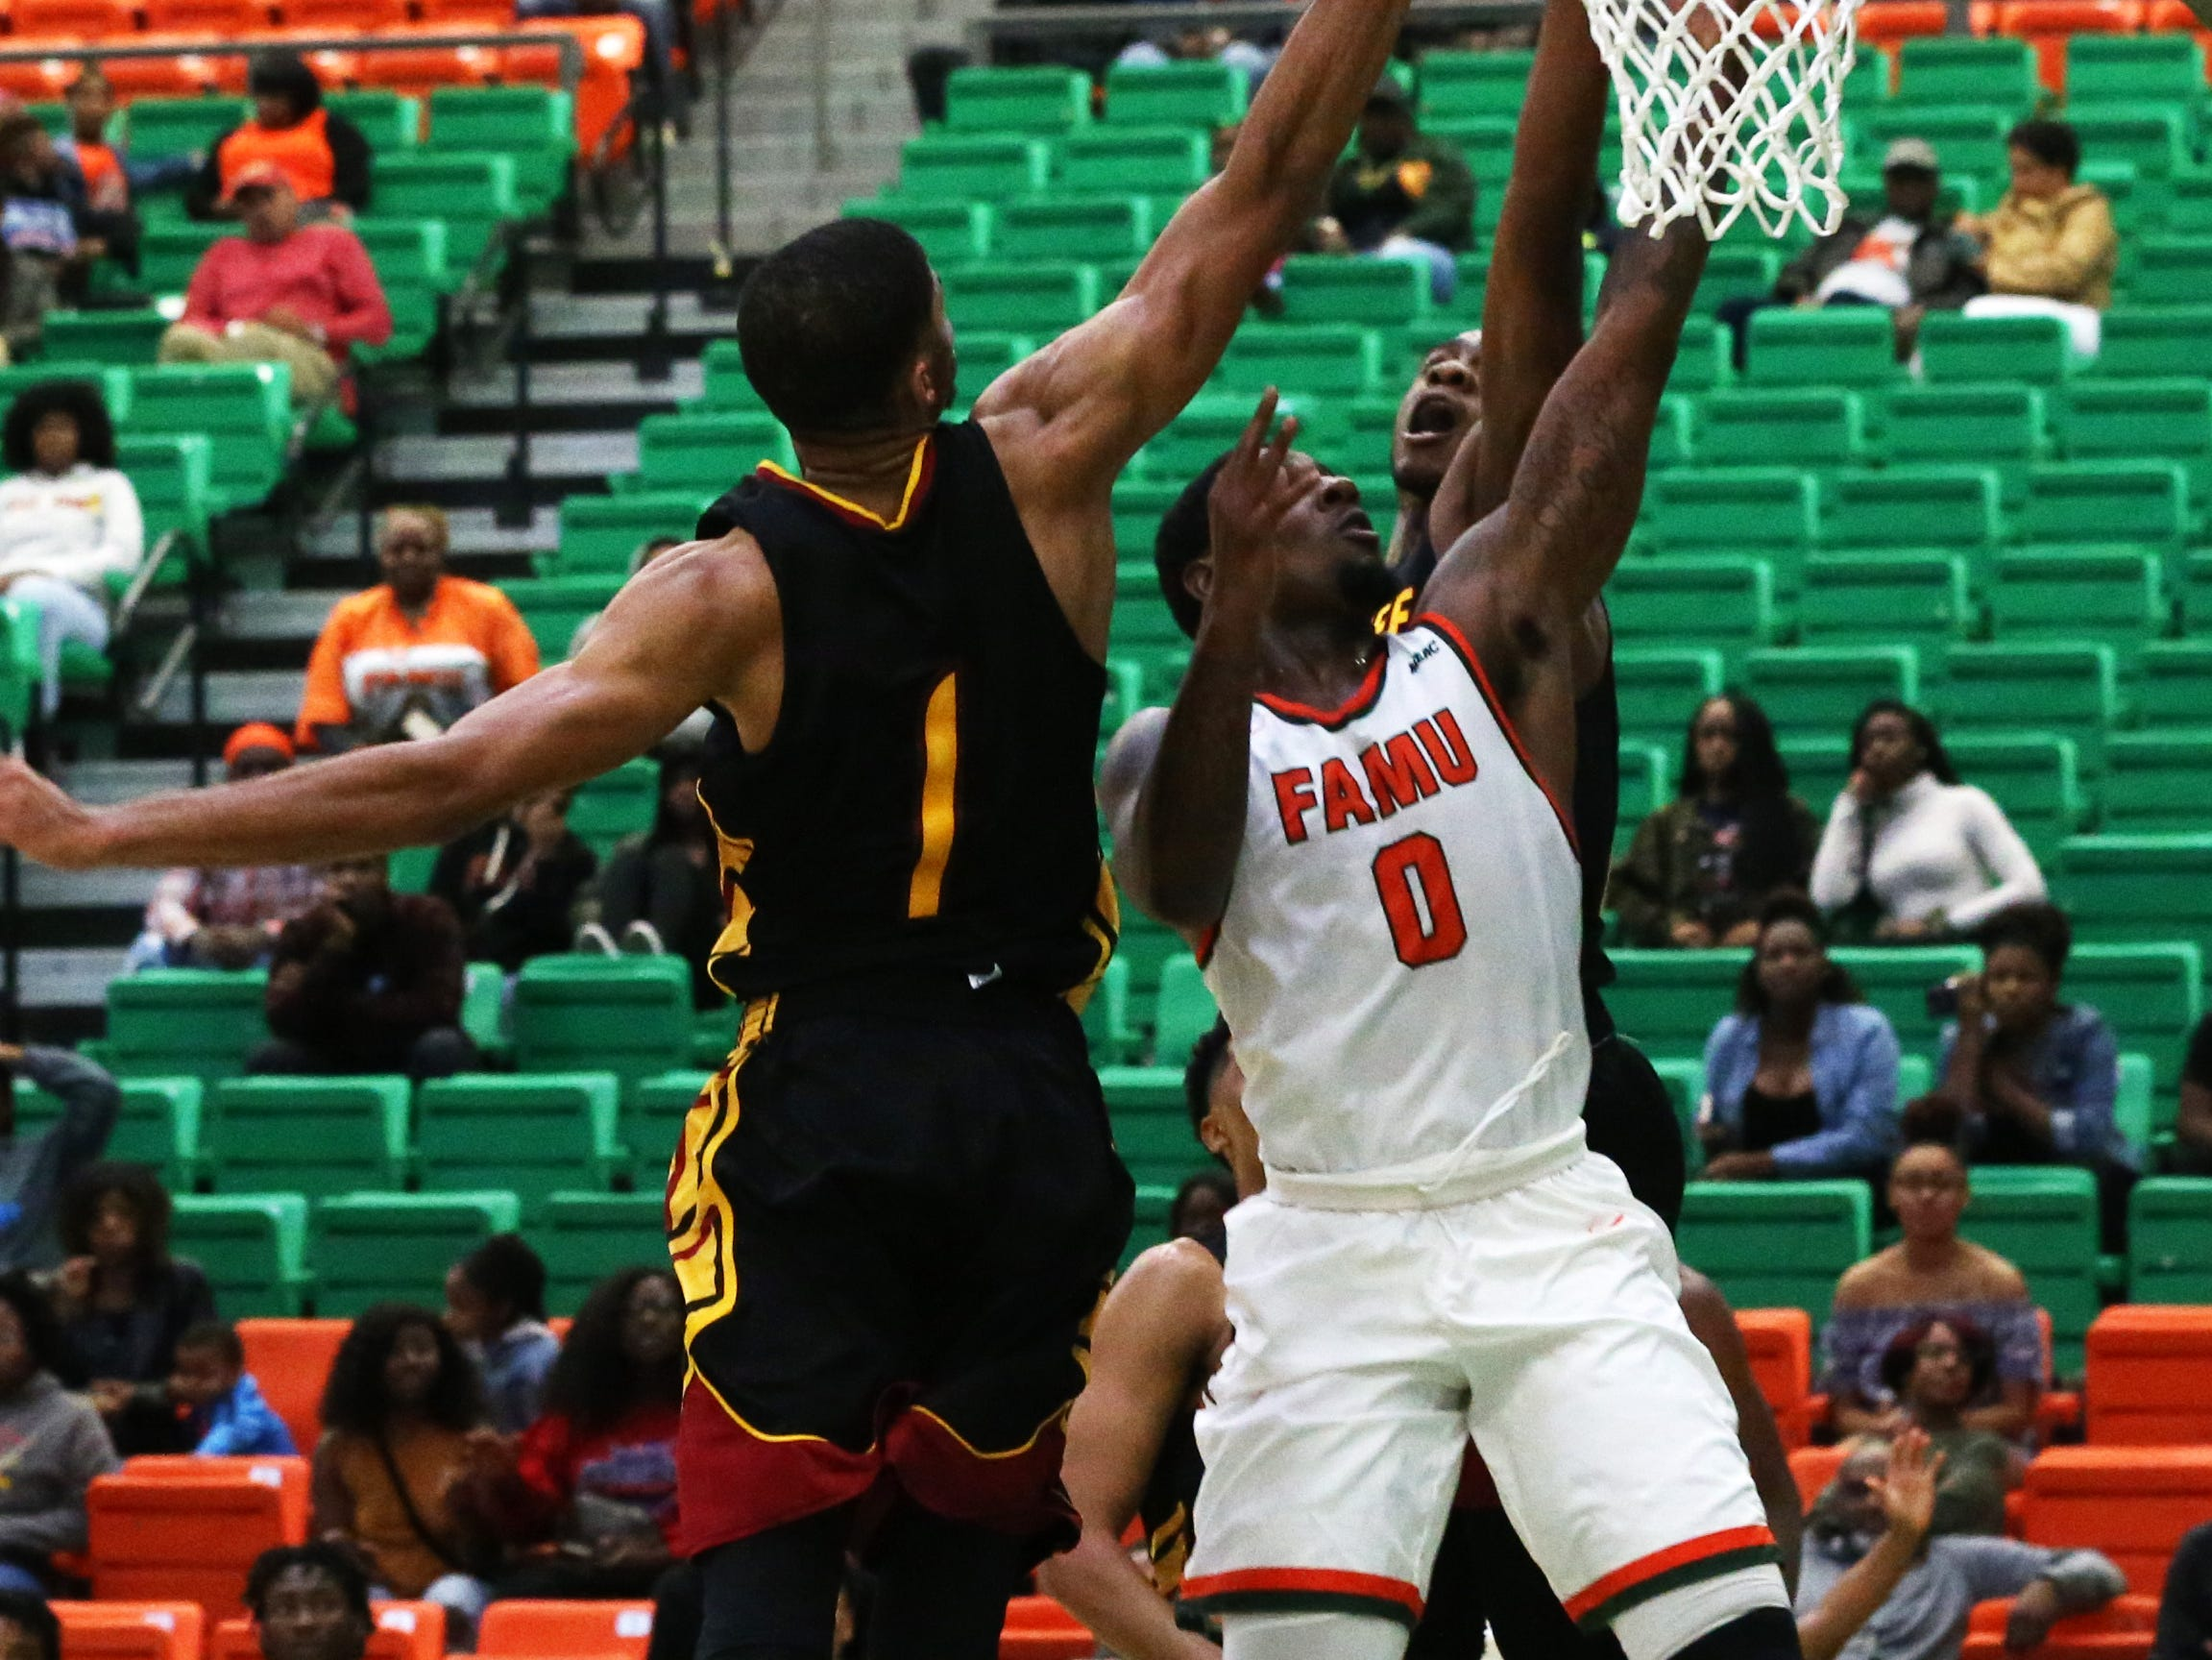 Florida A&M Rattlers forward Tracy Hector Jr. (0) scores over two Tuskegee Golden Tigers in their first home game of the season on Saturday, Nov. 10.